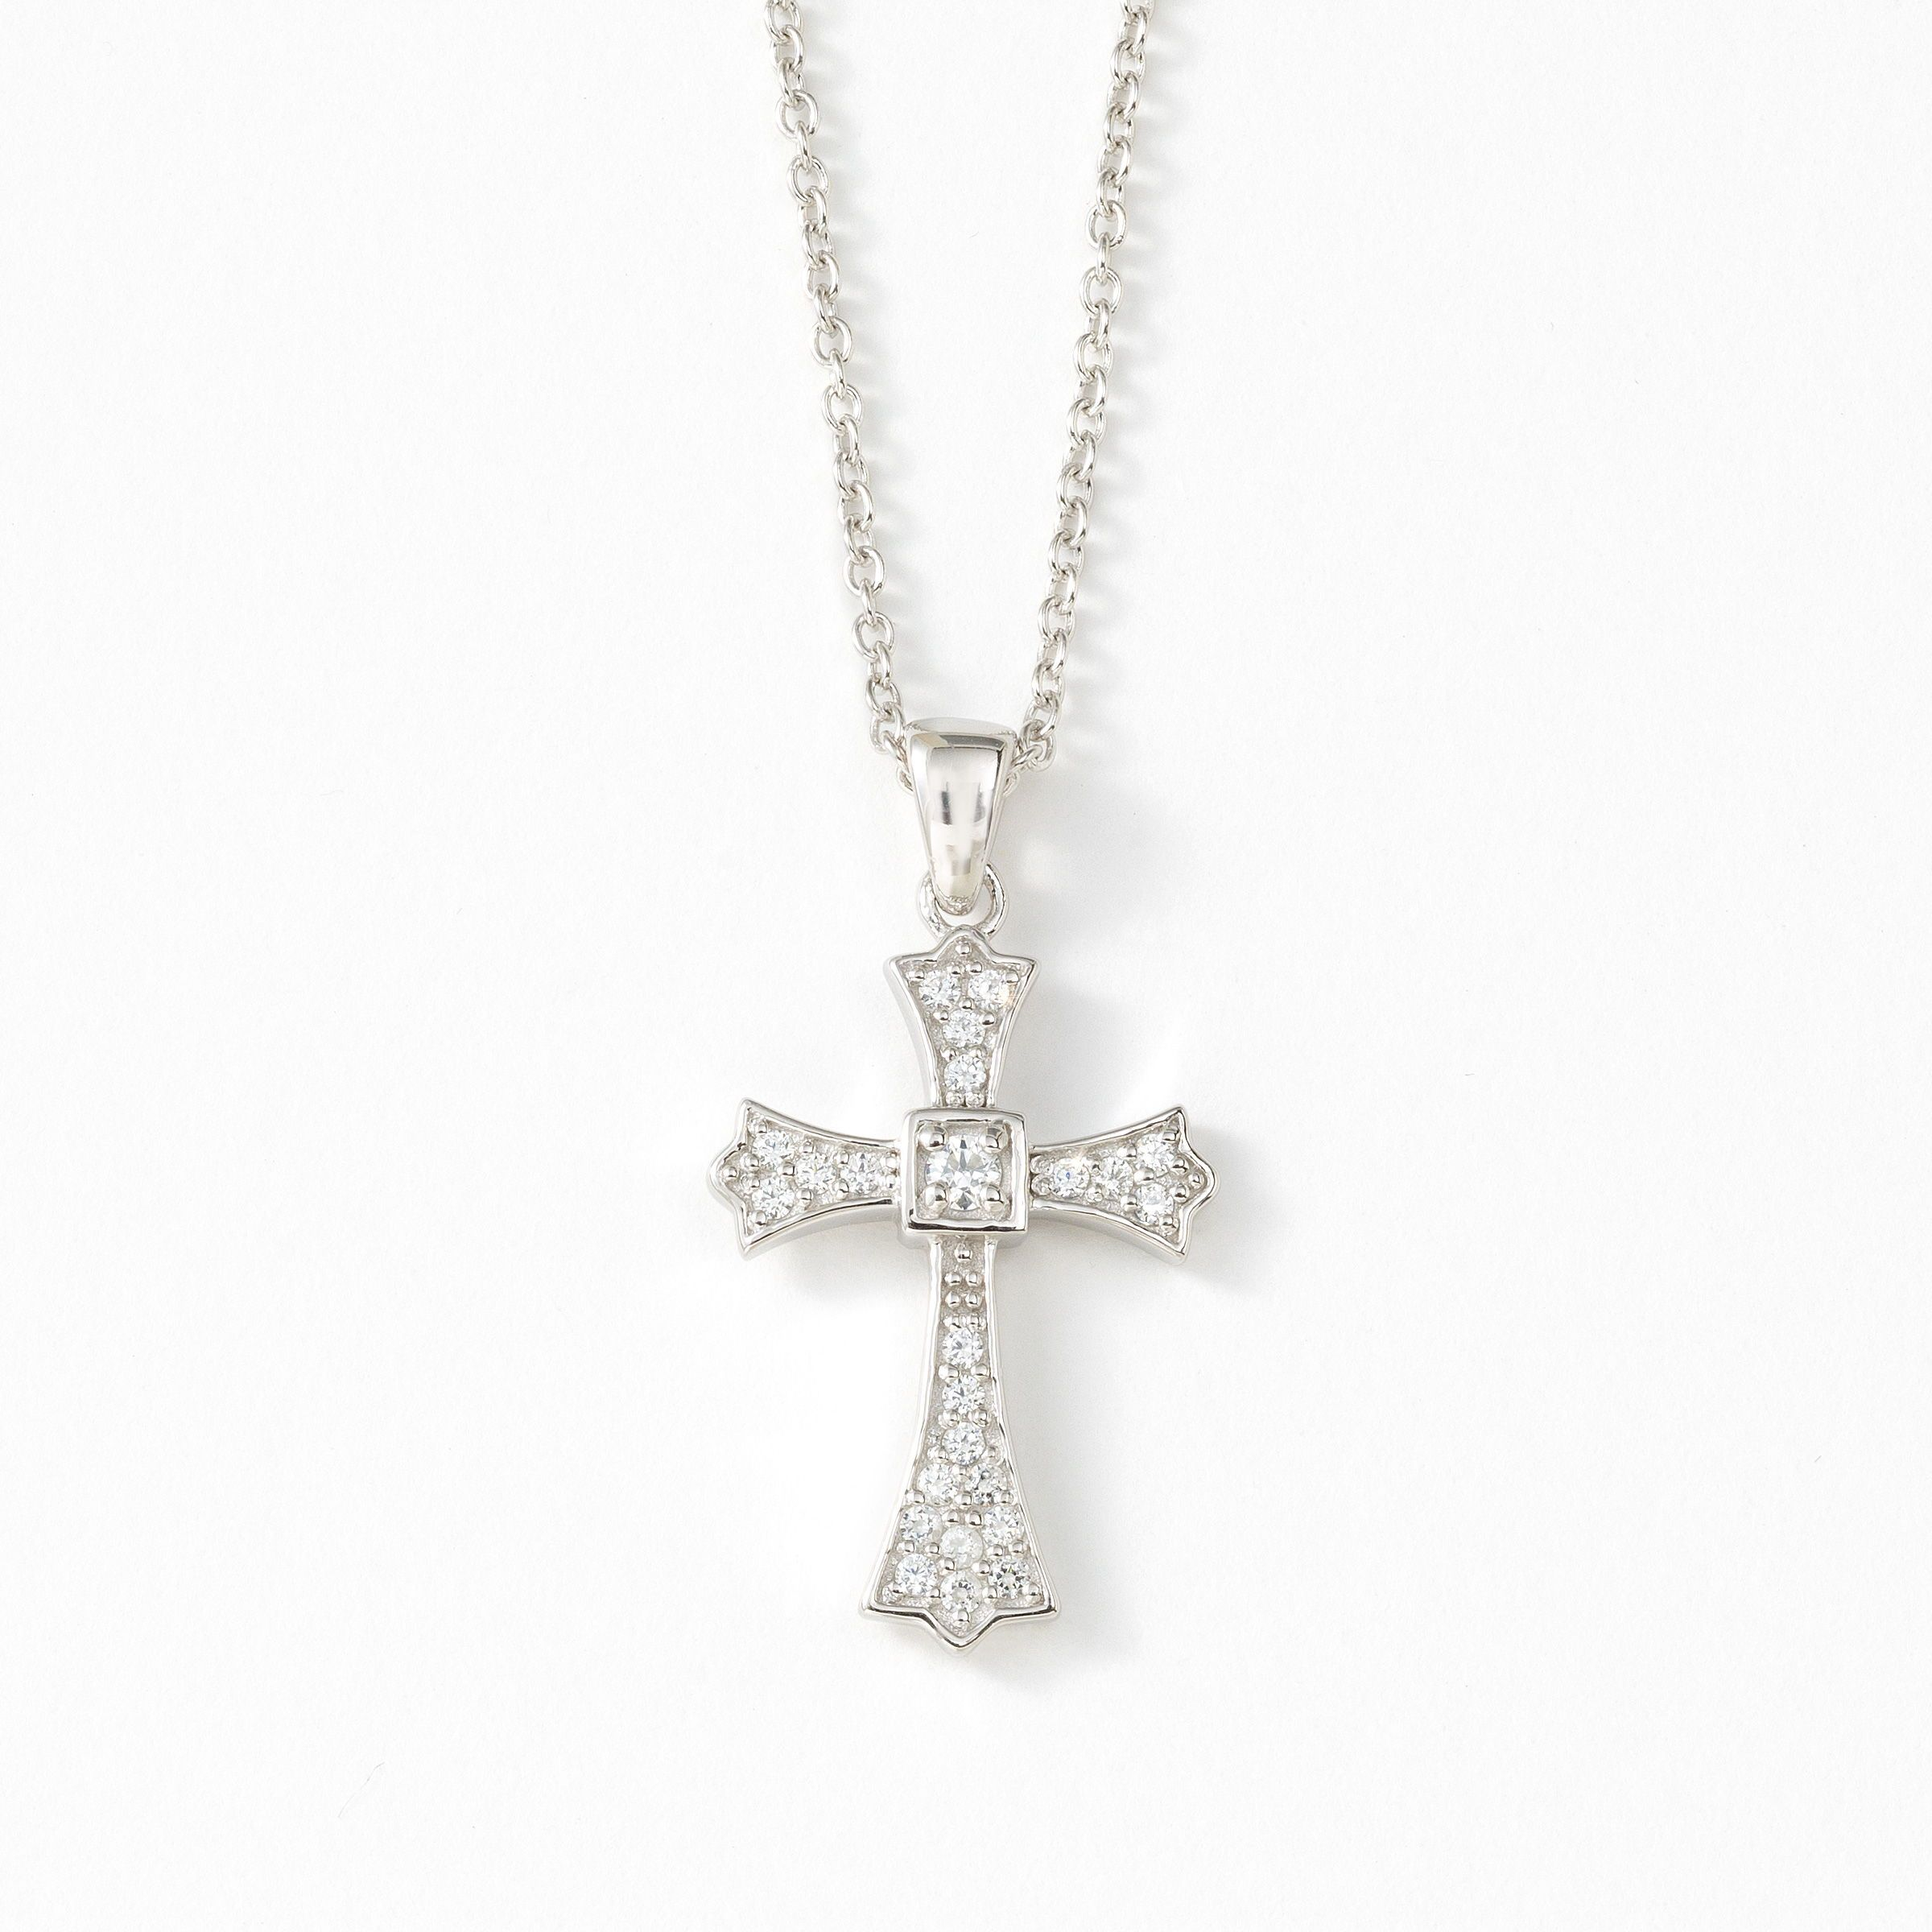 Divine Necklace $89 #cross #giftsforher #sparkle #necklace ...